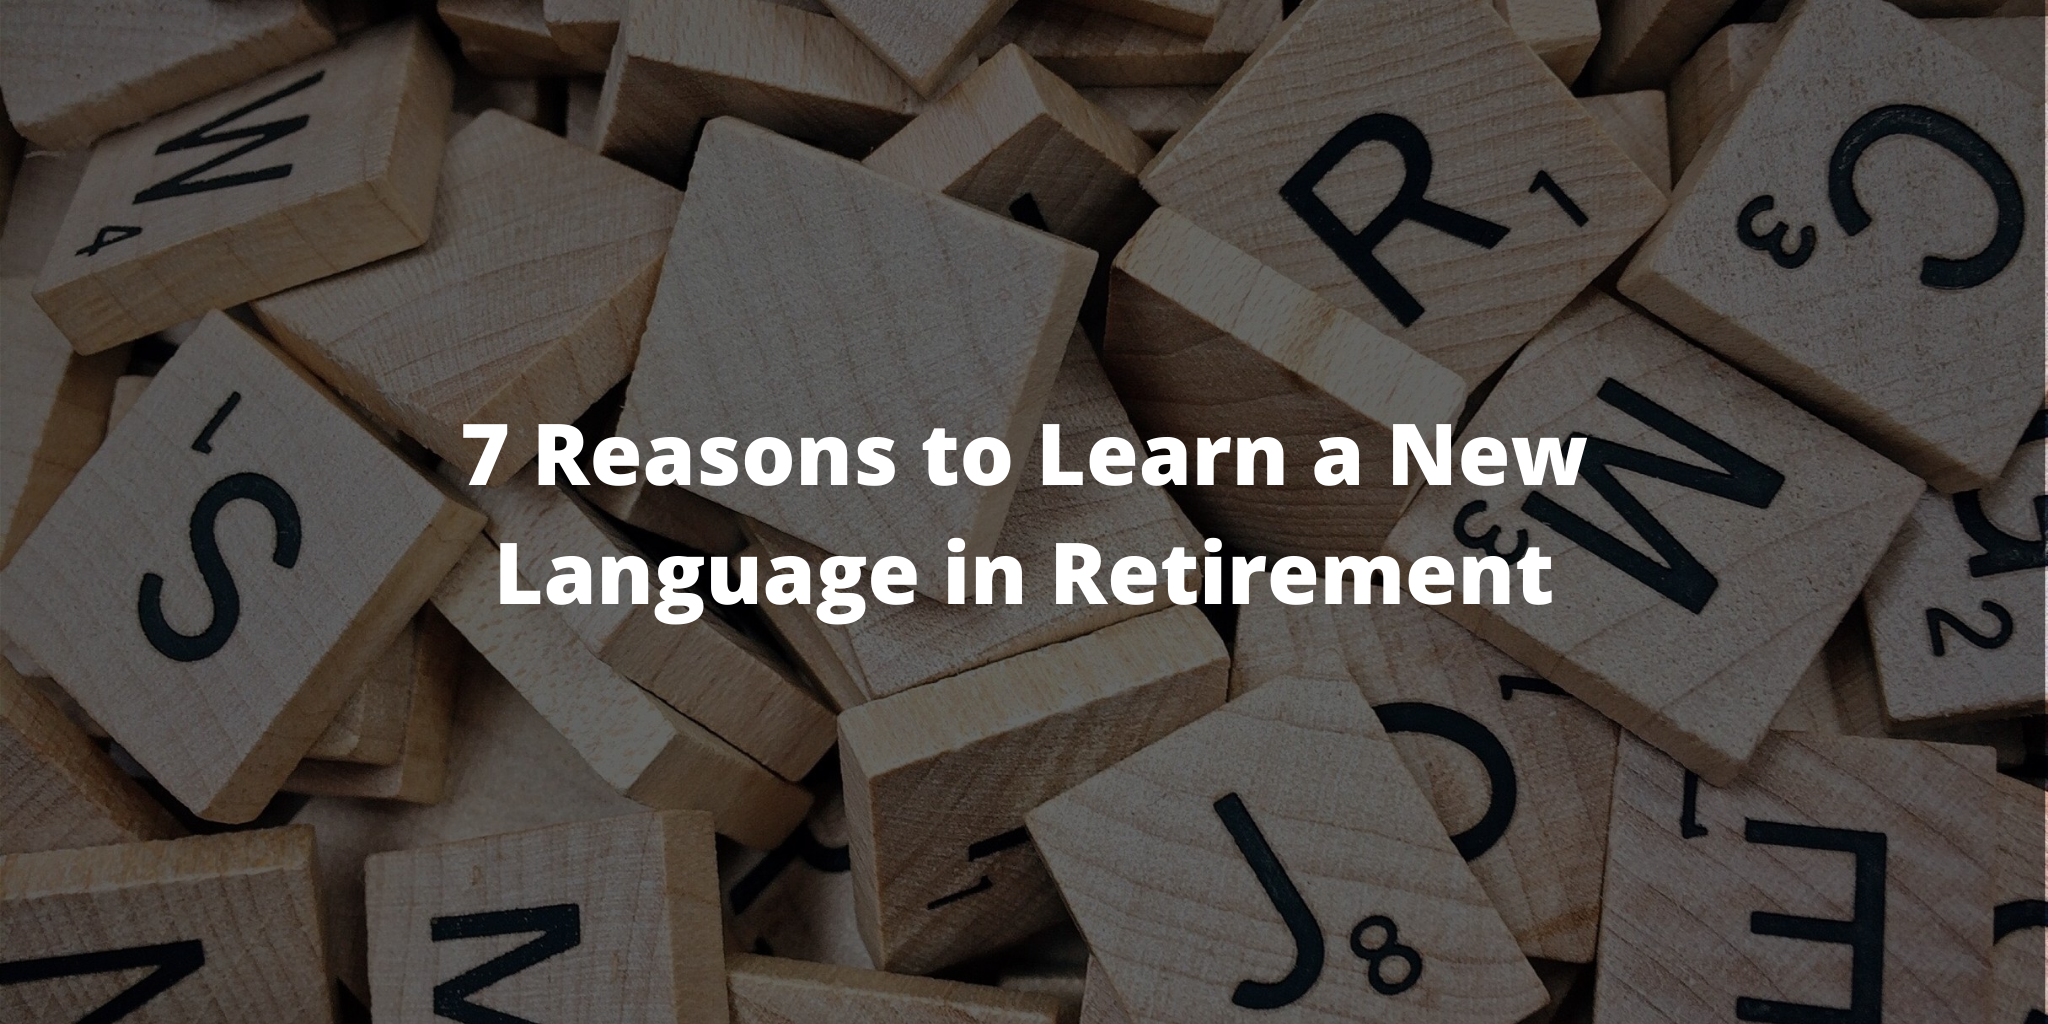 7 Reasons to Learn a New Language in Retirement